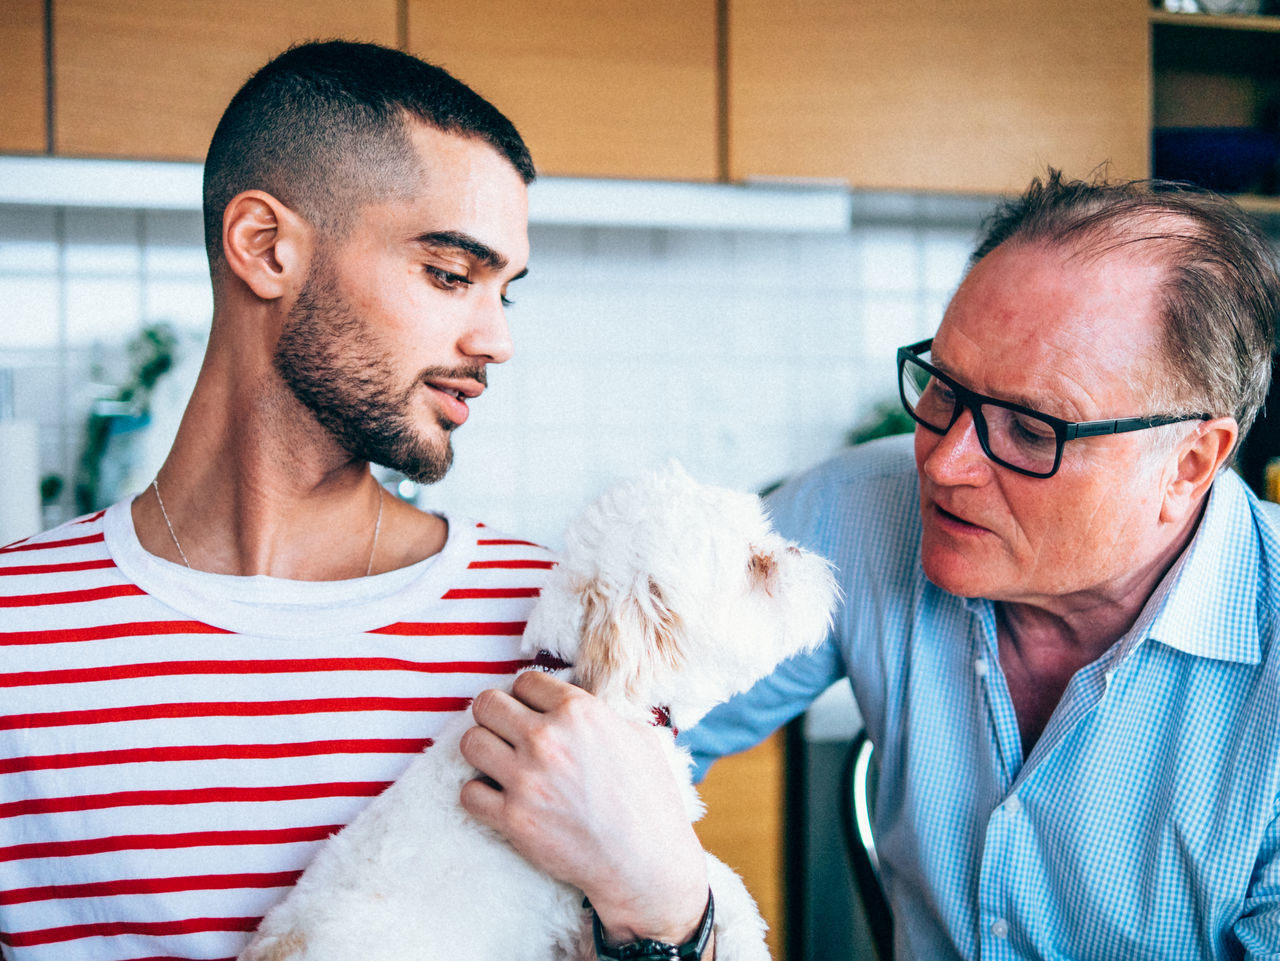 Beautiful stock photos of ostern, striped, men, two people, people